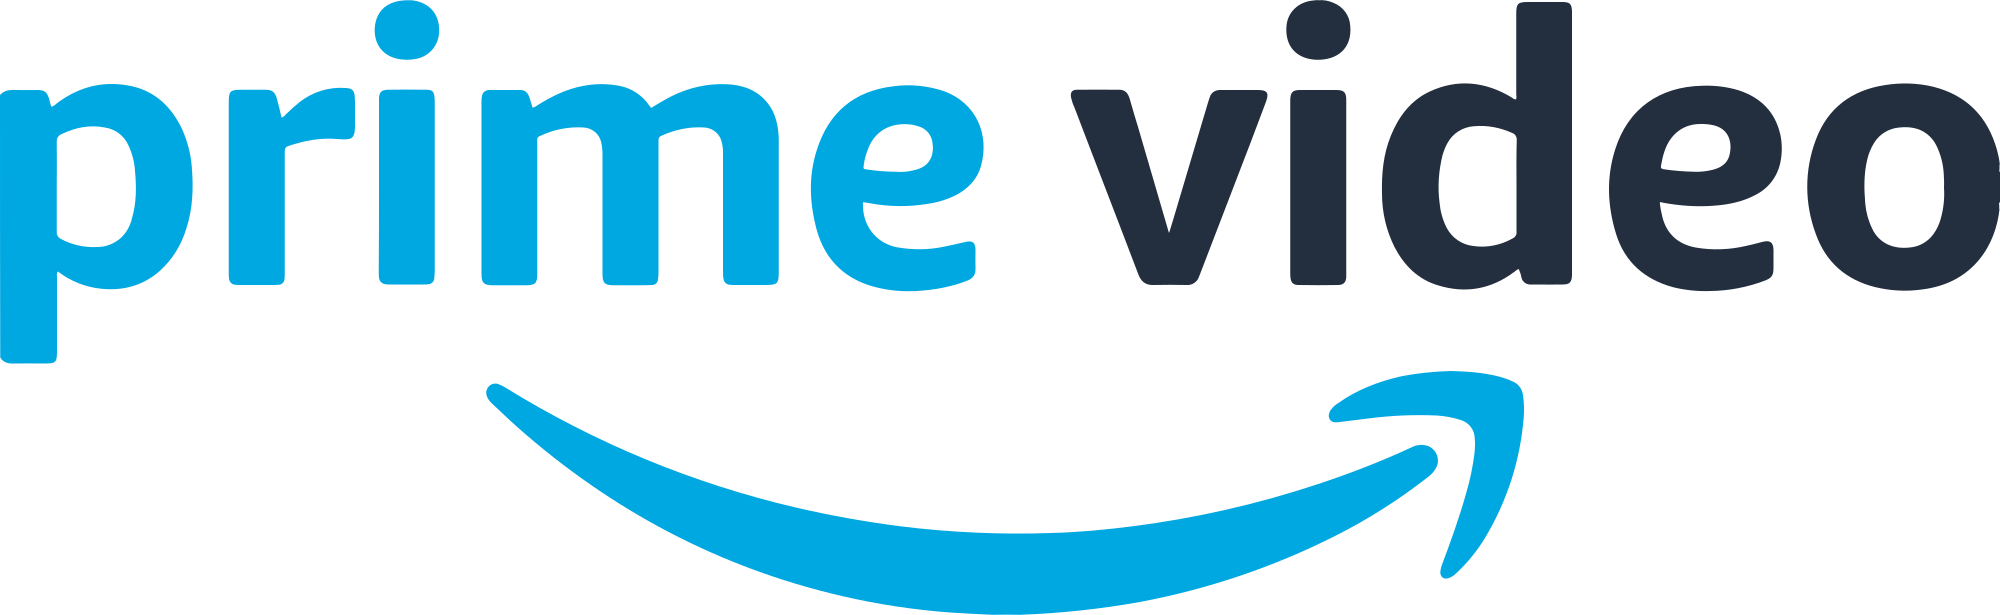 Amazon prime video logo png. File svg wikimedia commons